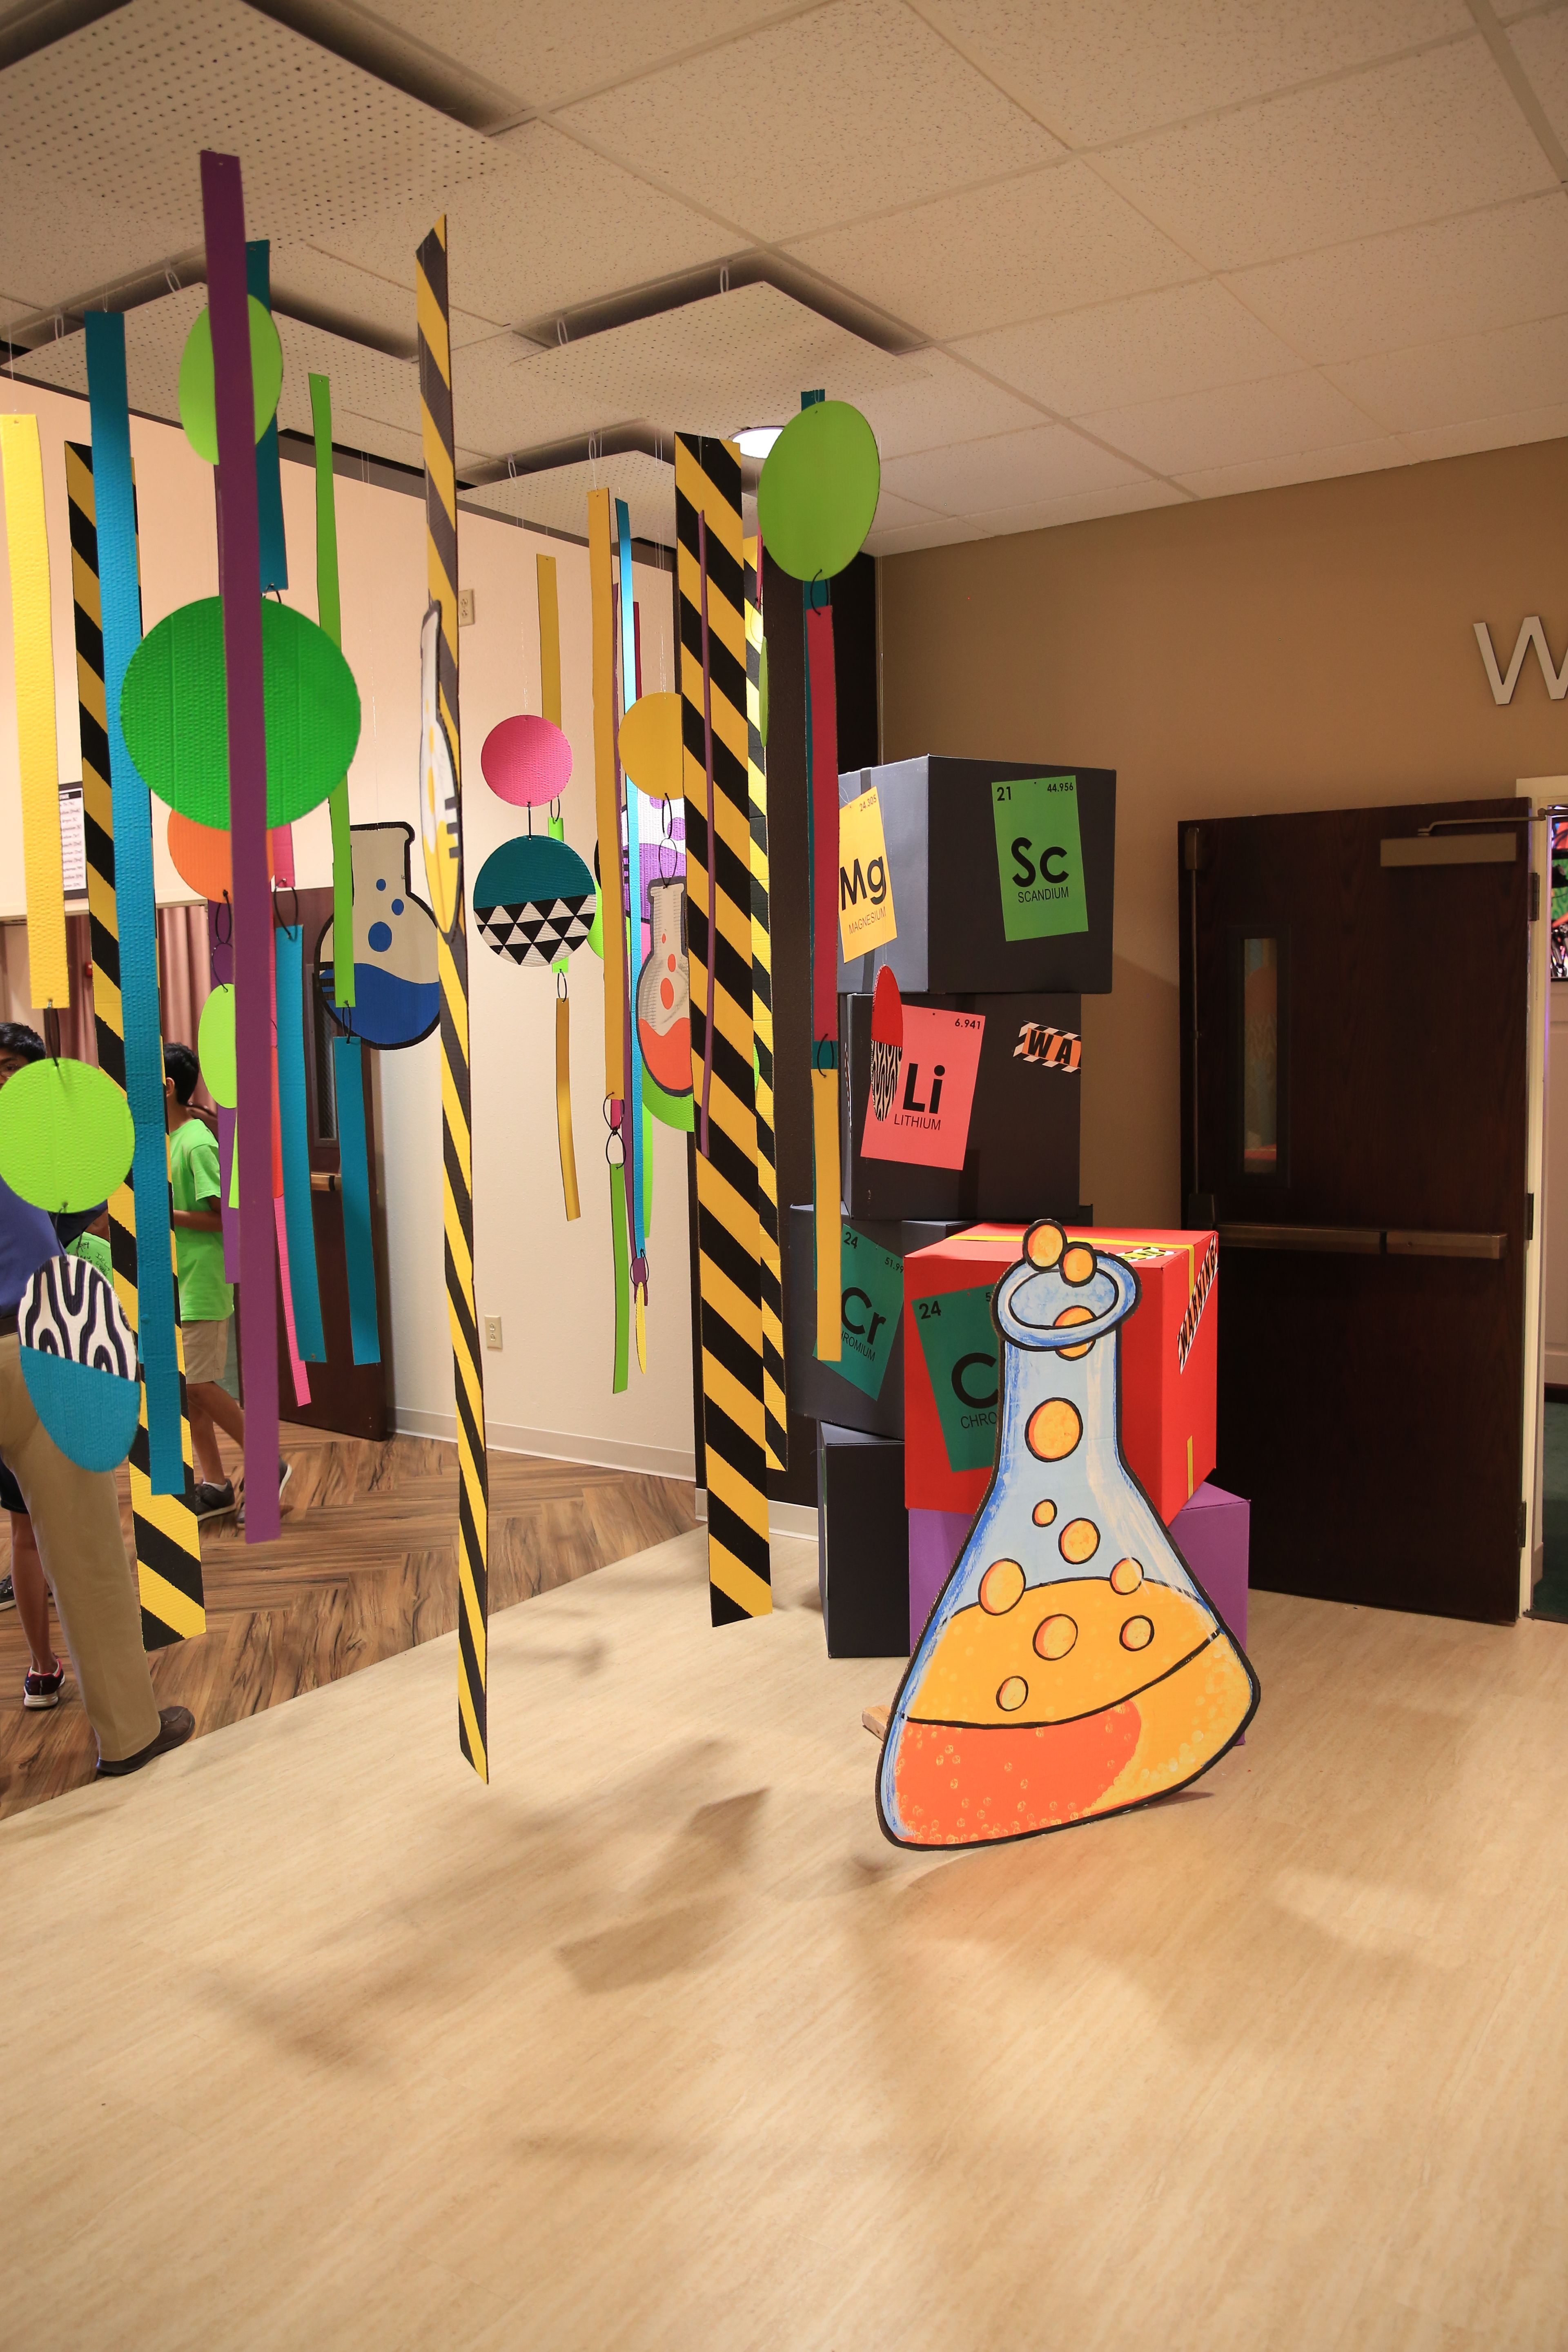 Hallway Decoration Ideas For Timelab Vbs2018 In 2020 Science